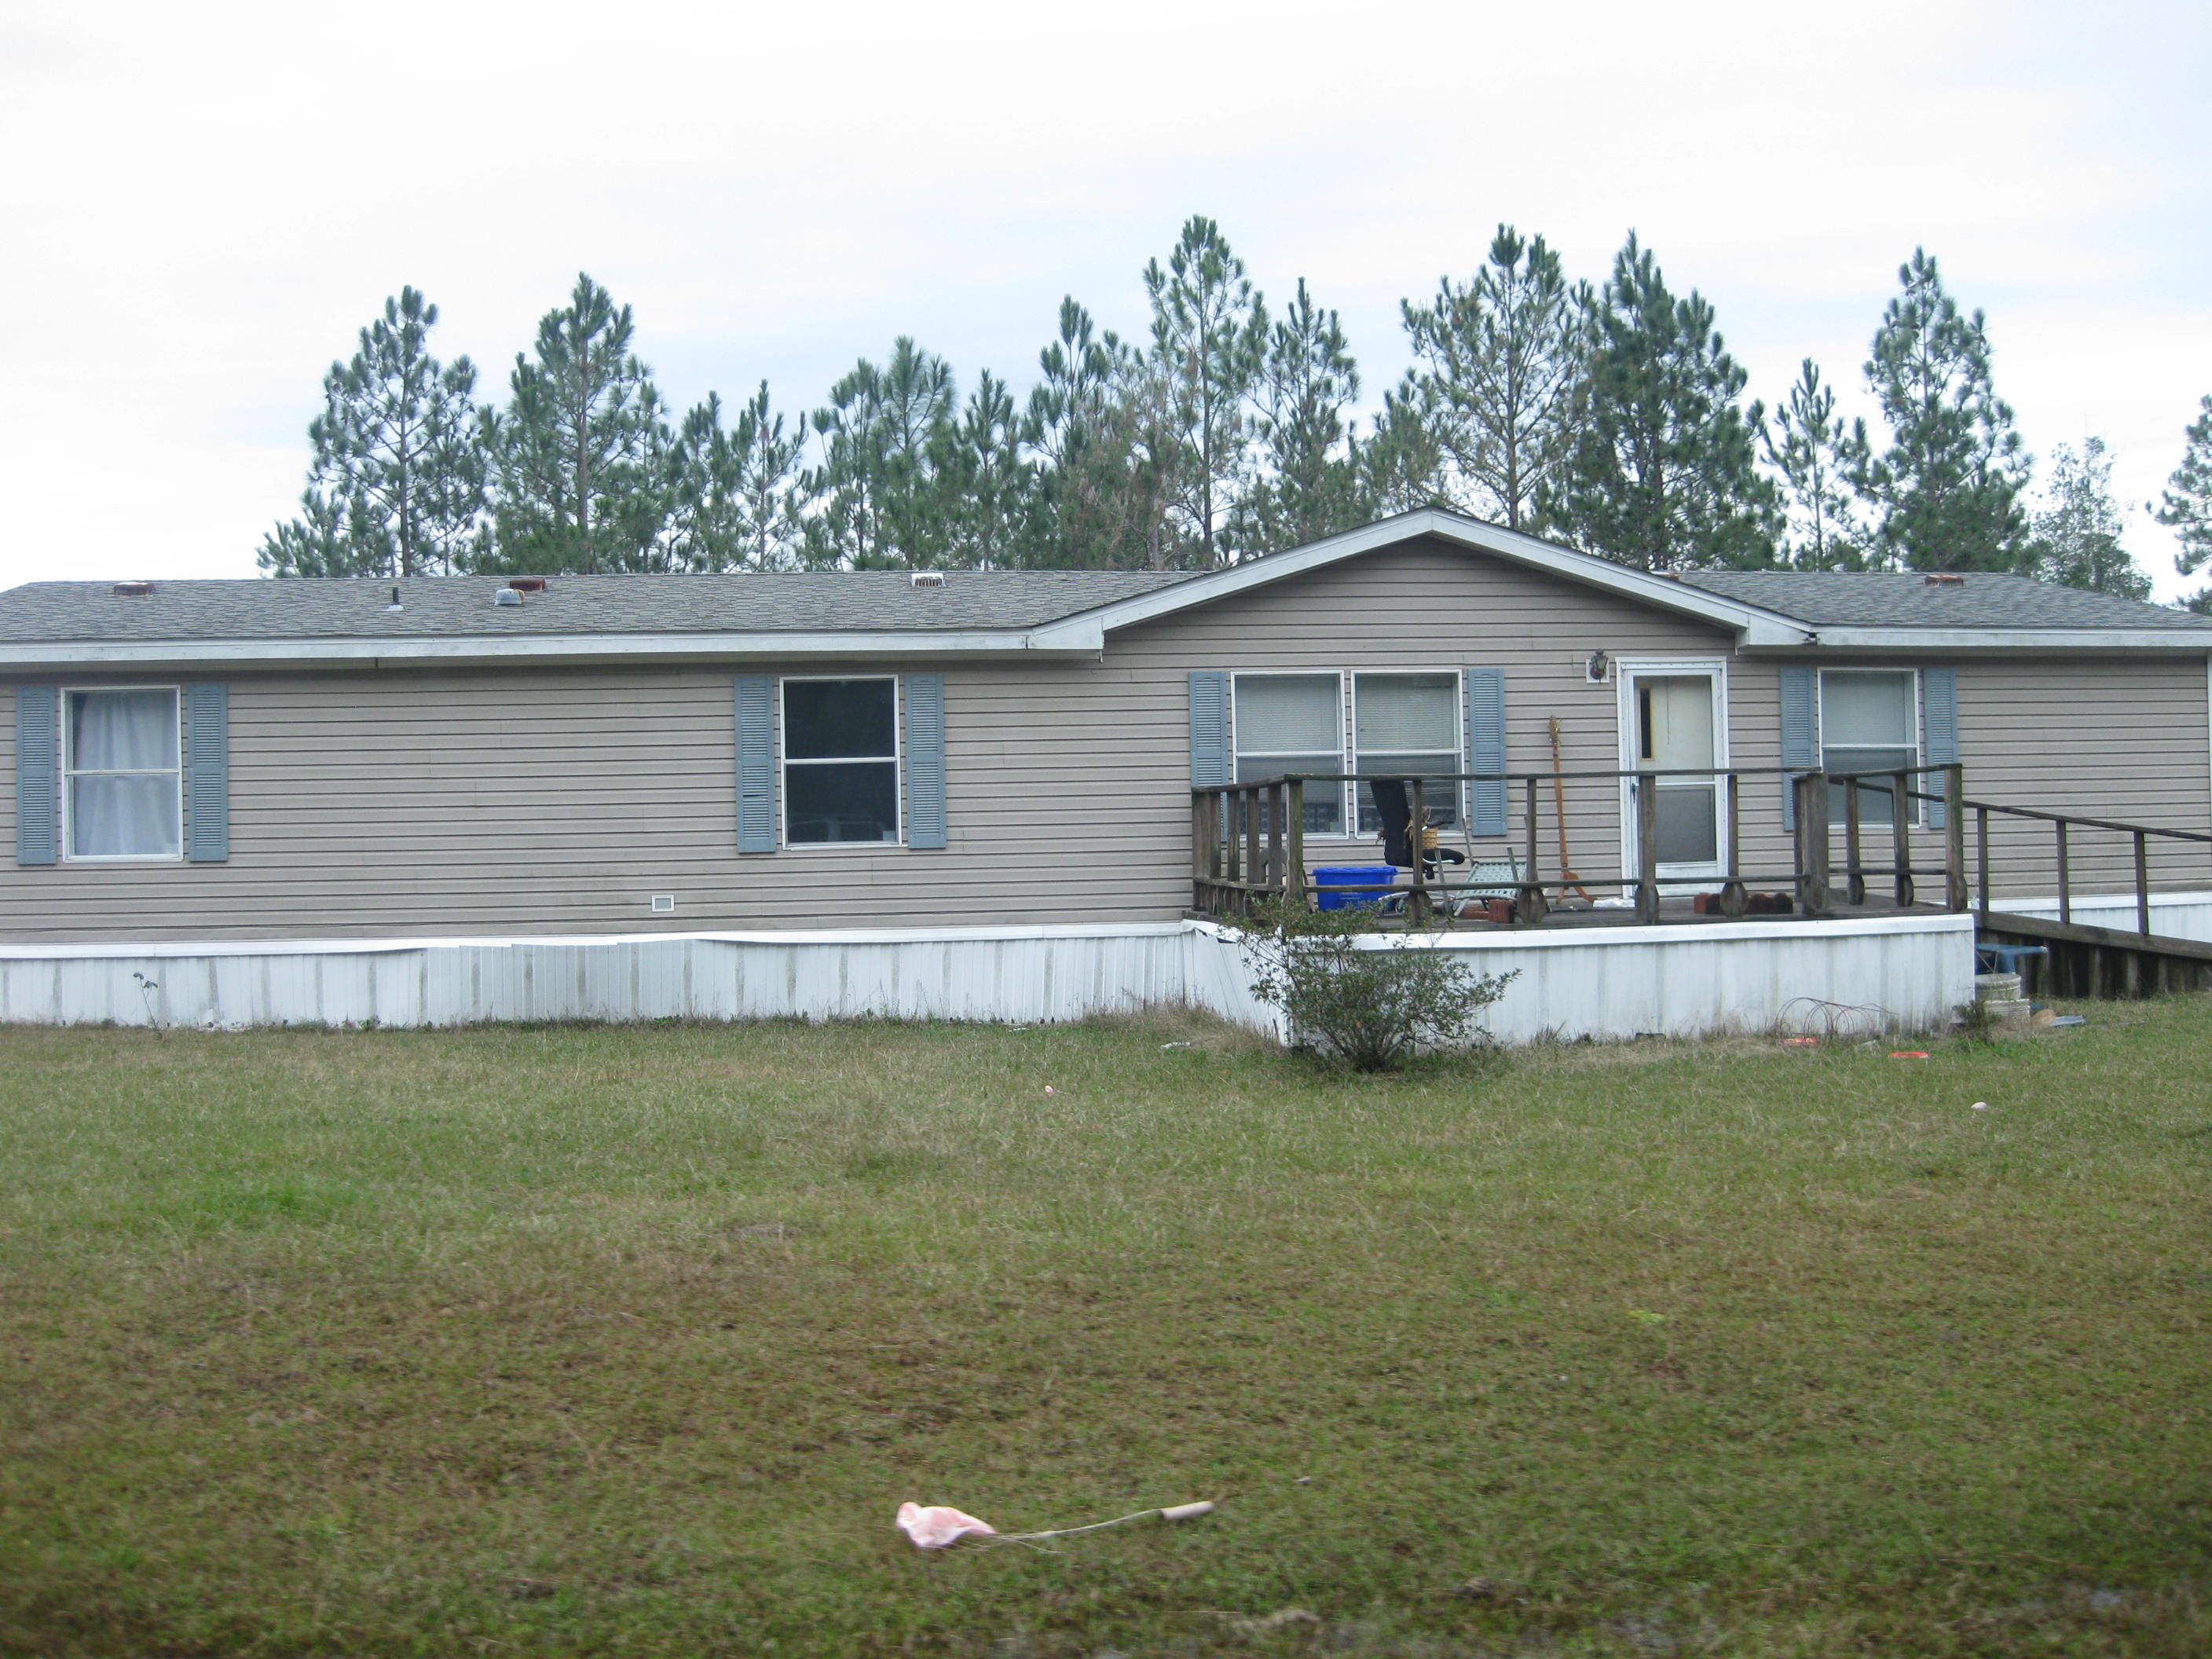 Ms Coast Foreclosed Home For Sale Saucier Foreclosed Homes For Sale Foreclosed Homes Property Search